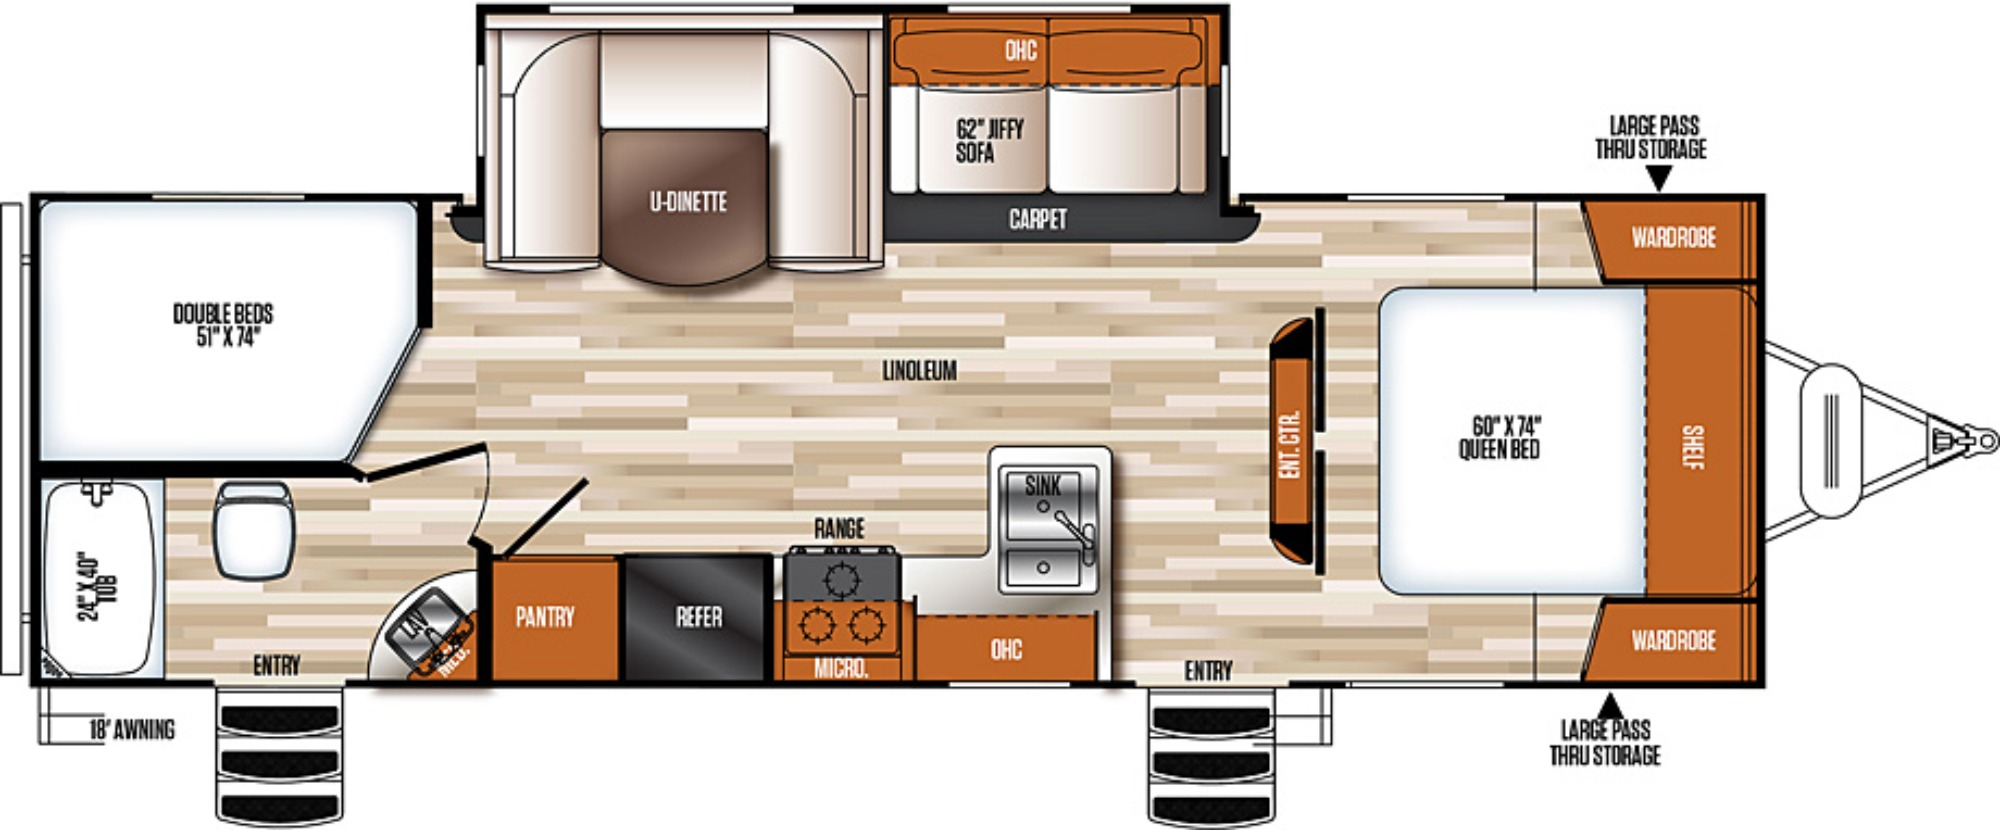 View Floor Plan for 2018 FOREST RIVER VIBE EXTREME LITE 261BHS